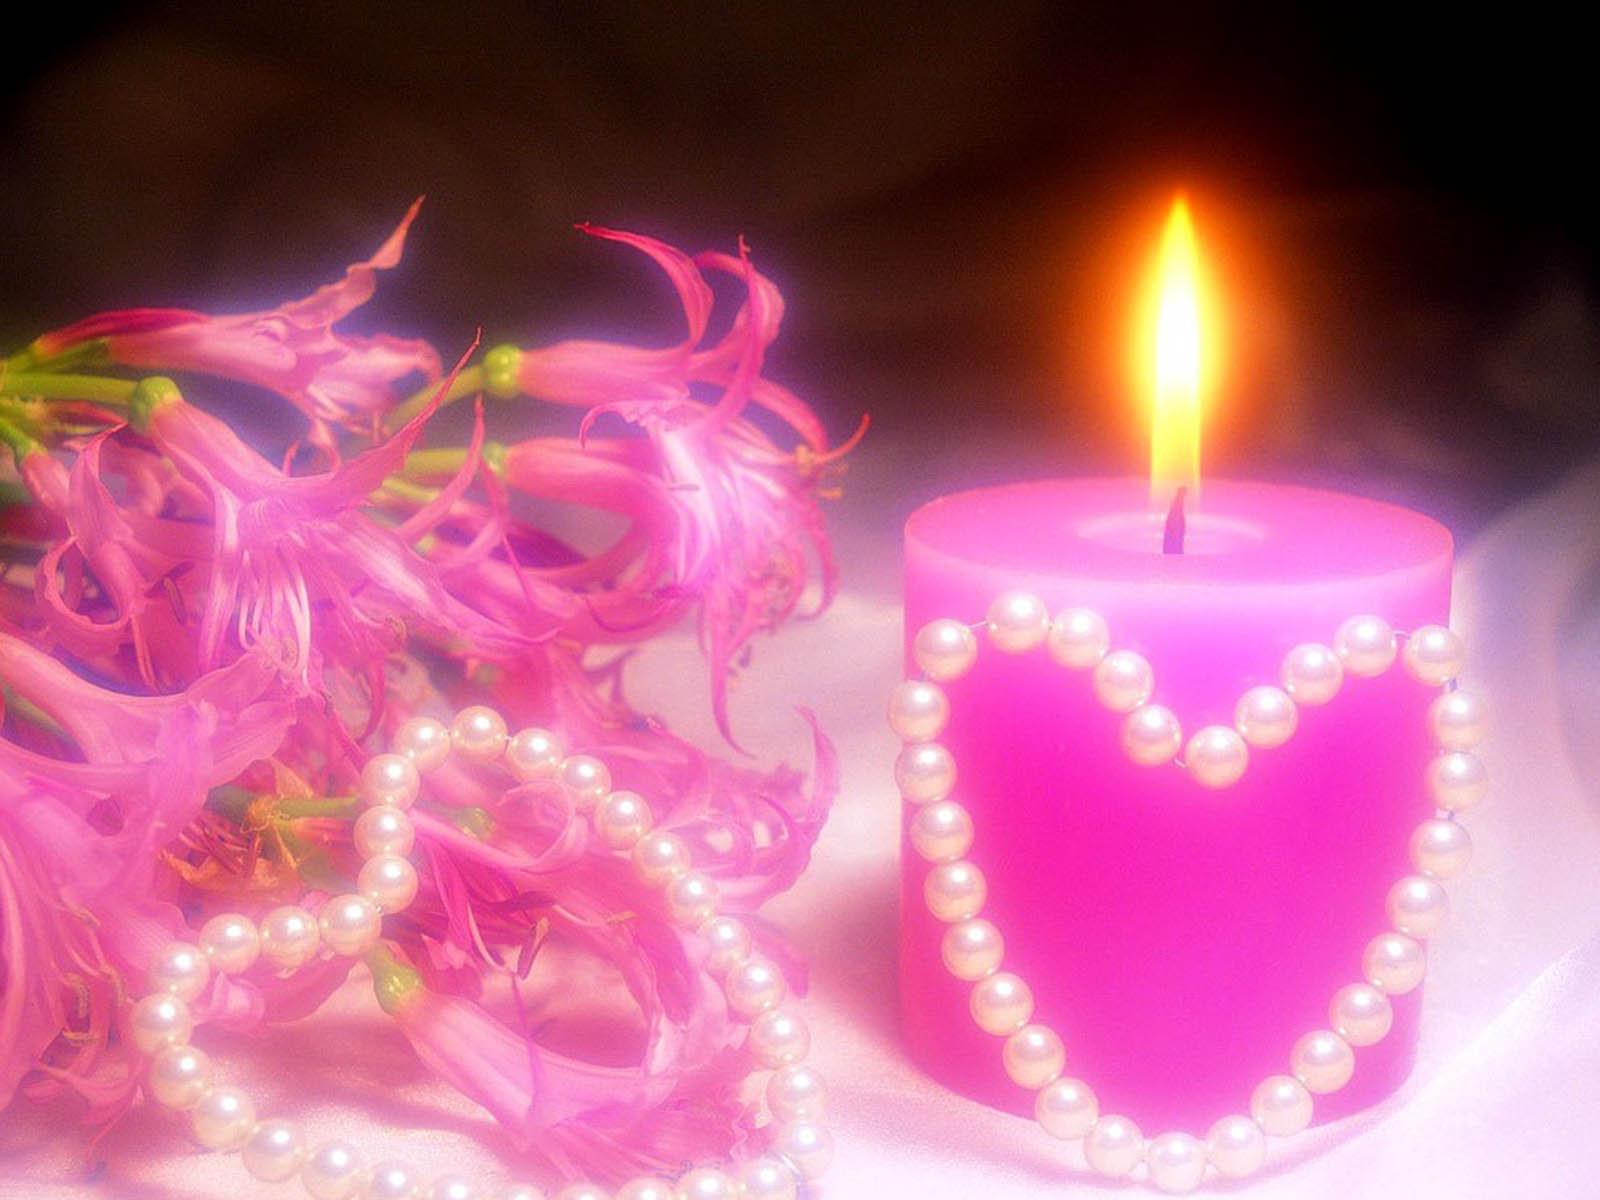 Tag Candles Wallpapers Backgrounds Paos Pictures And Images For Free